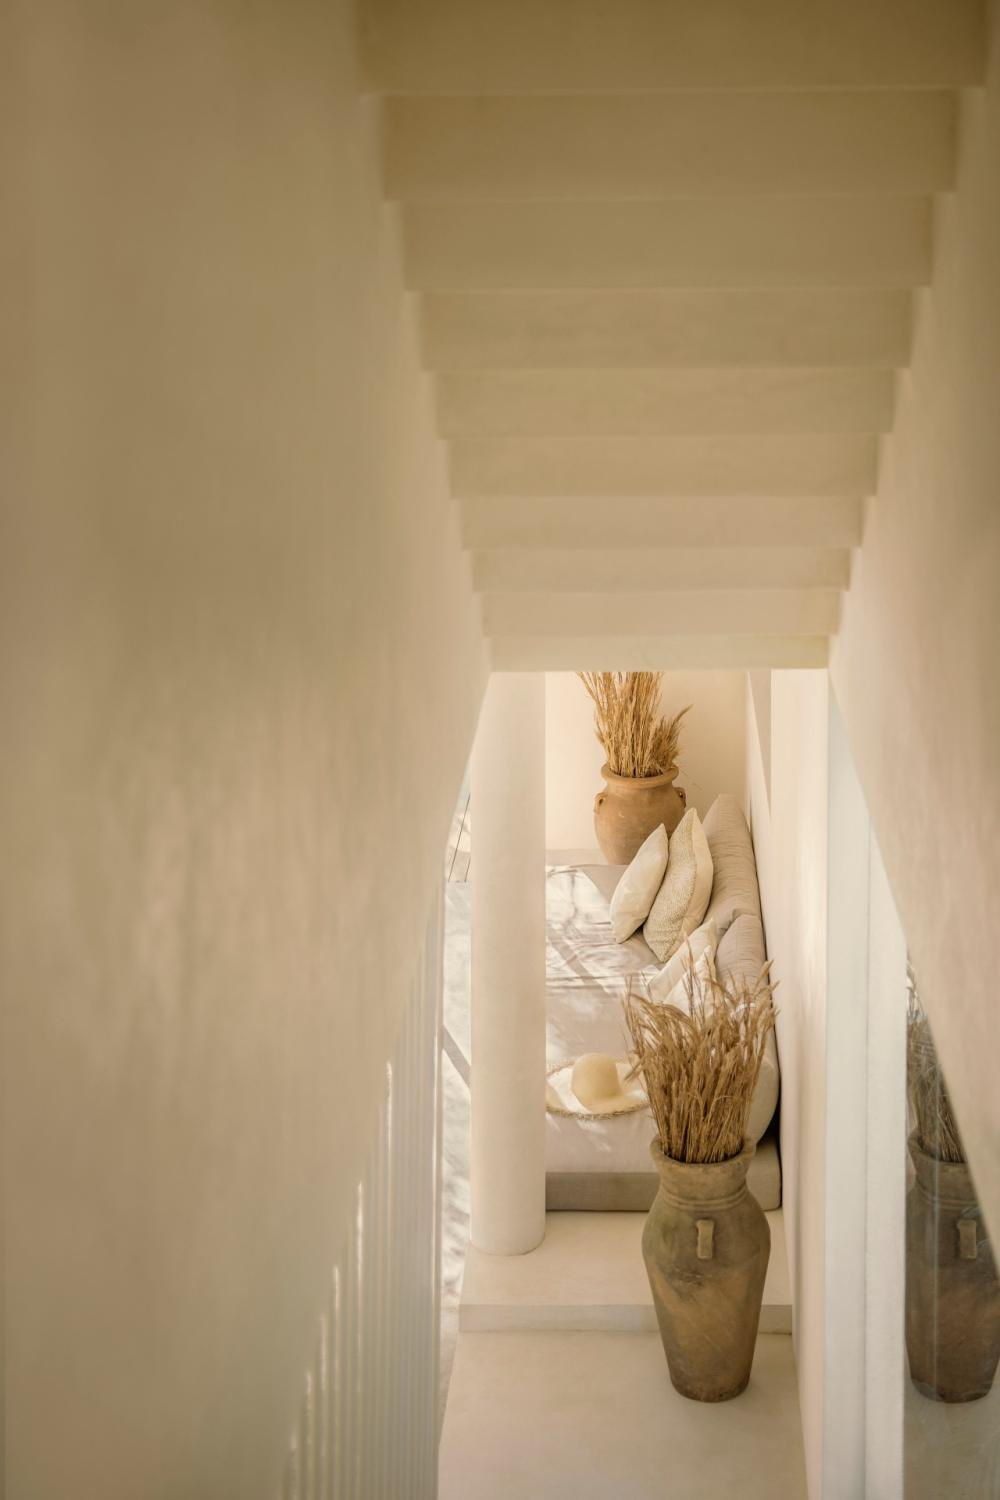 House tour: a peaceful, tropical holiday home in the trendy Mexican beach town of Tulum-13.jpg